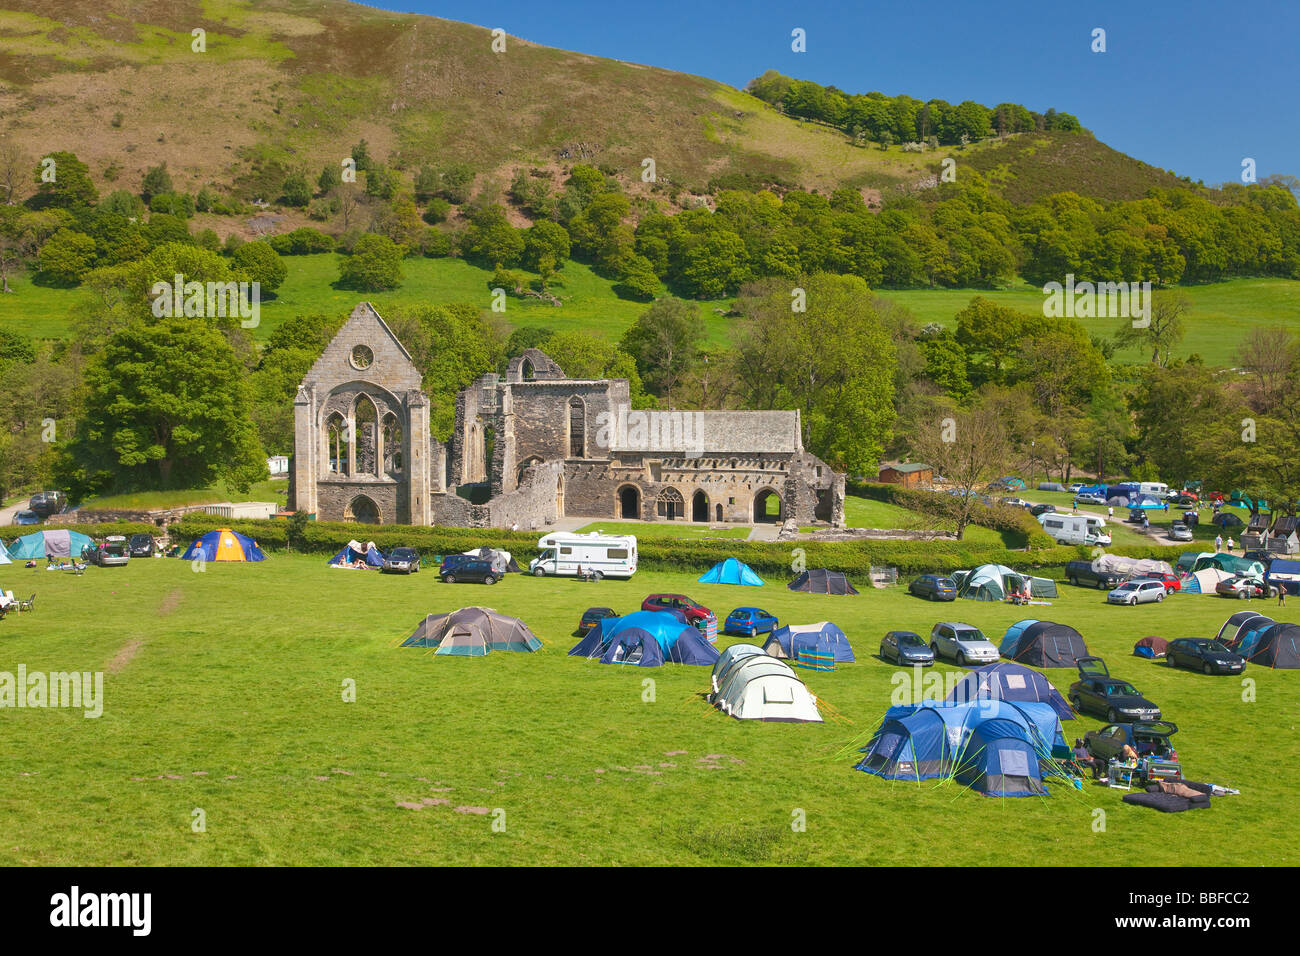 Campsite with tents Valle Crucis 13th century Cistercian Abbey Ruins near Llangollen North Wales Cymru UK United - Stock Image